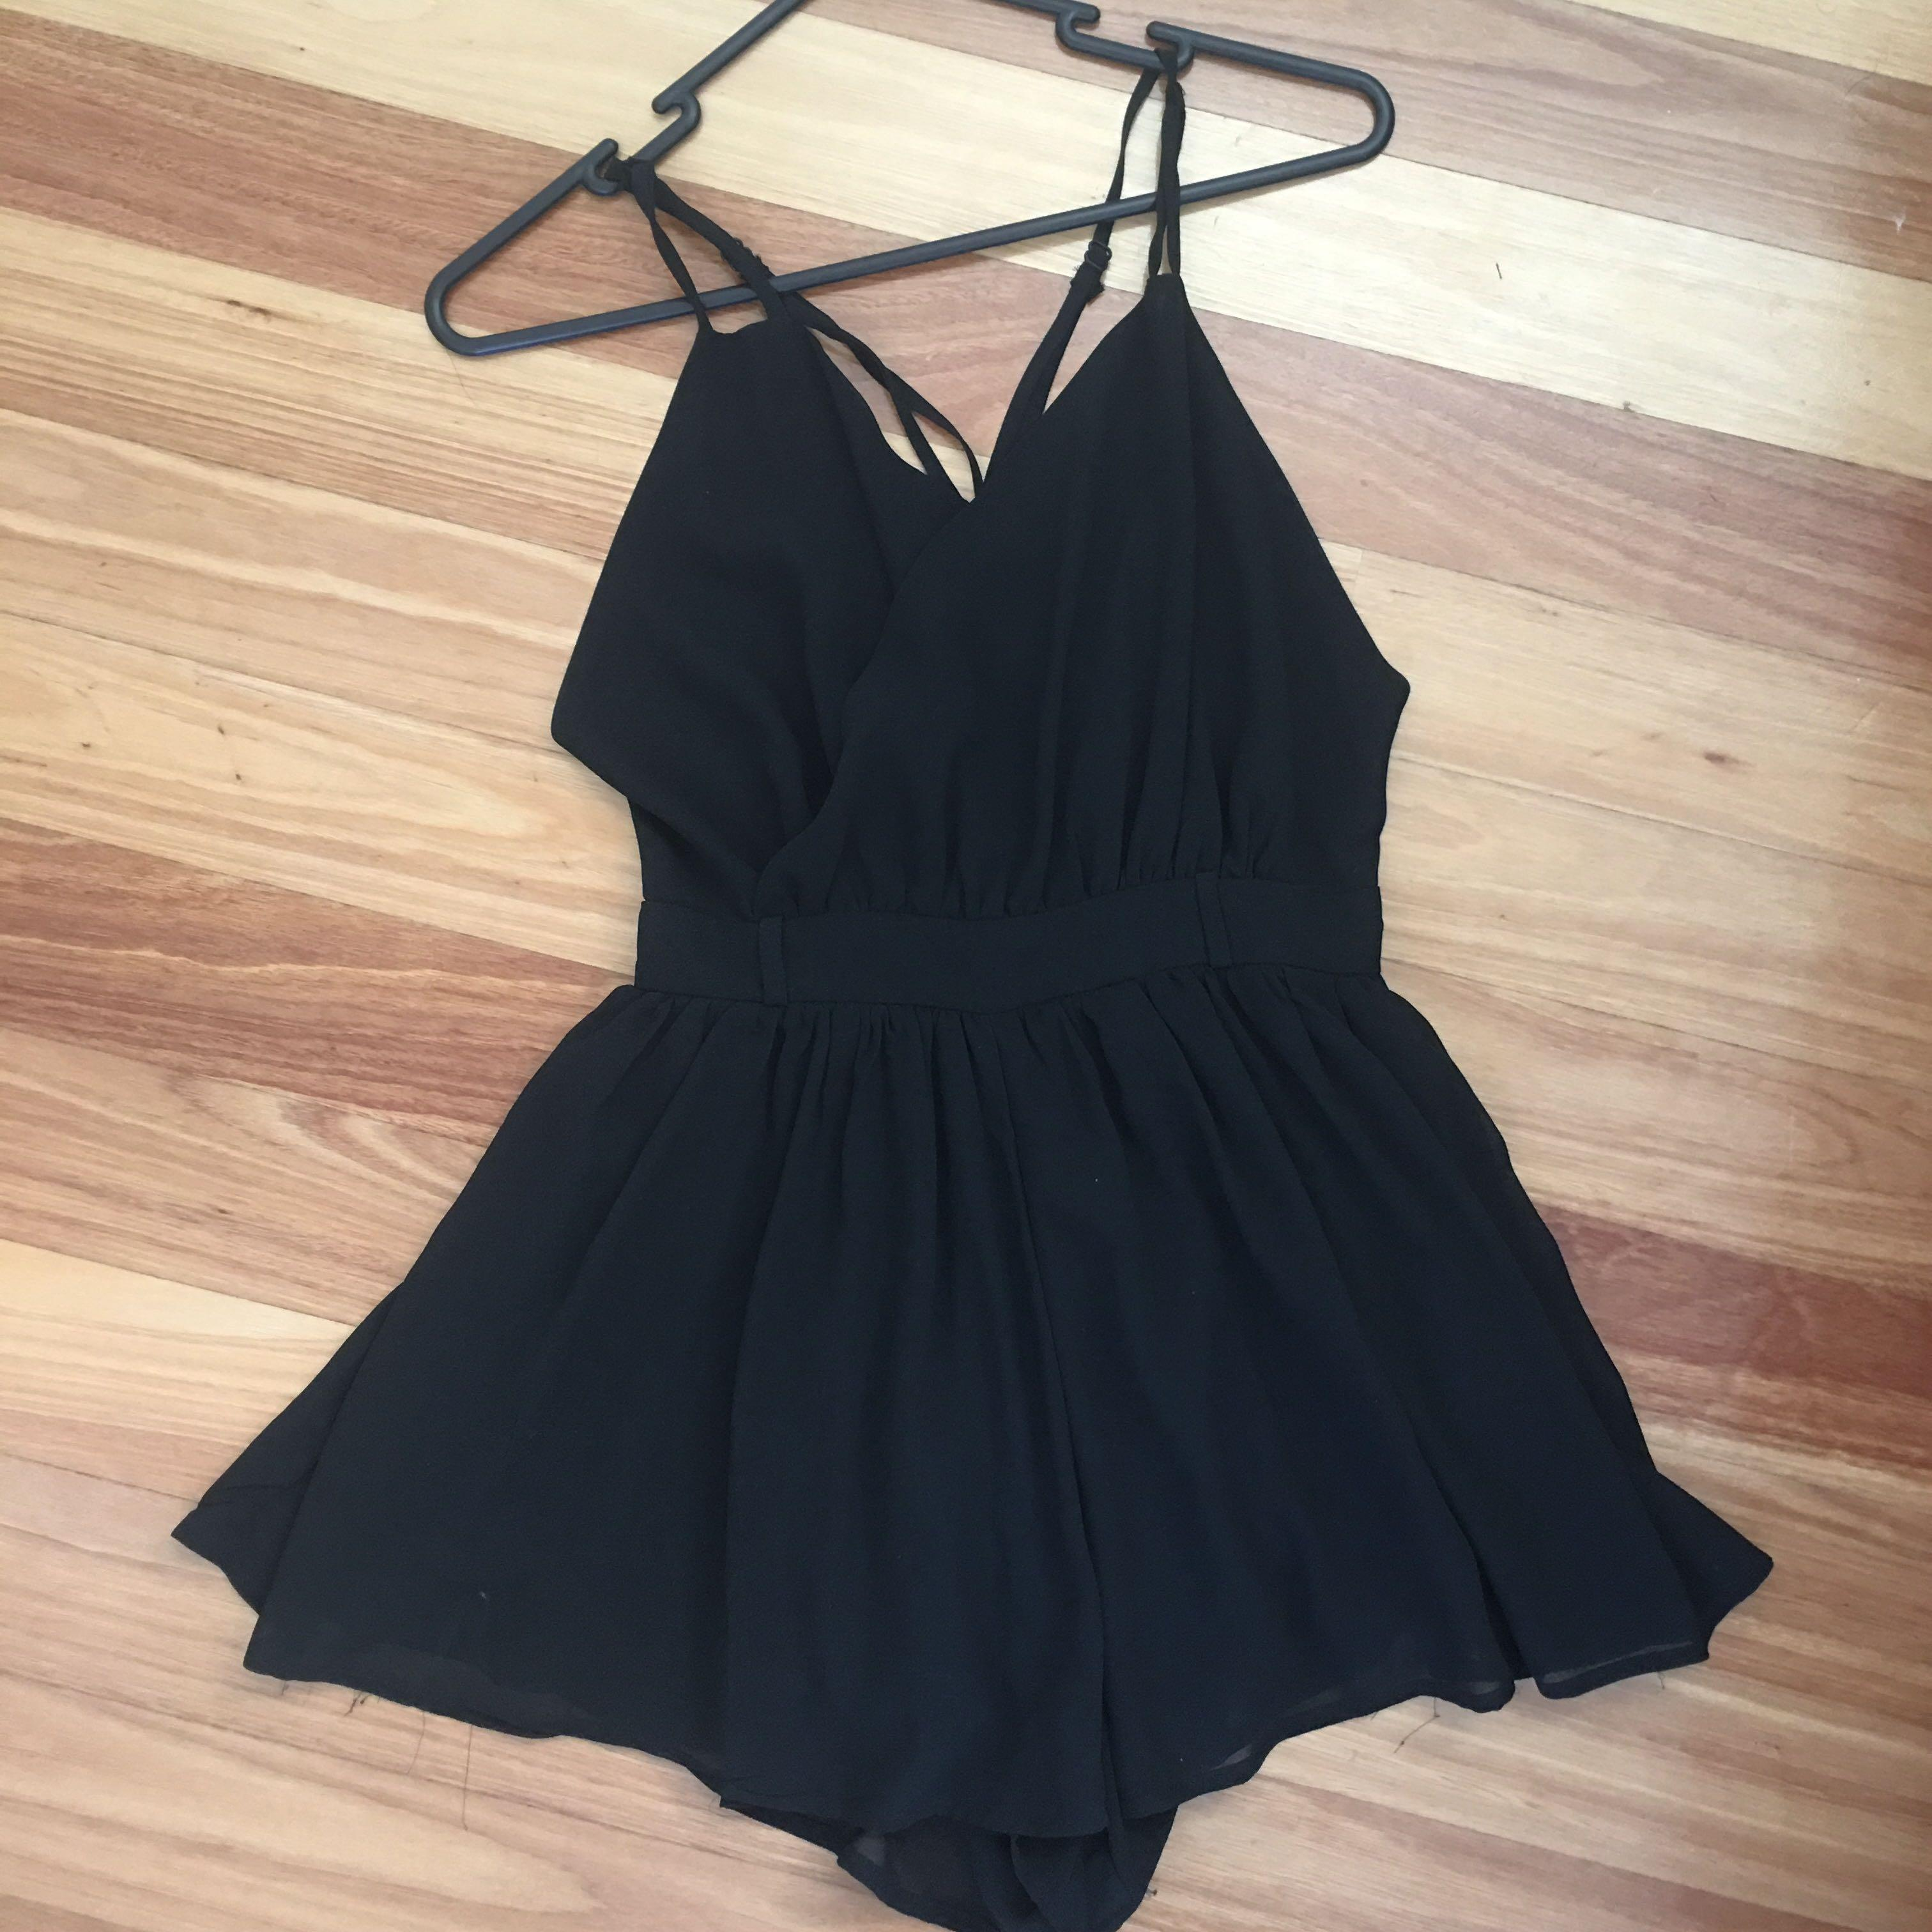 Black Backless Flowy Playsuit with Adjustable Straps